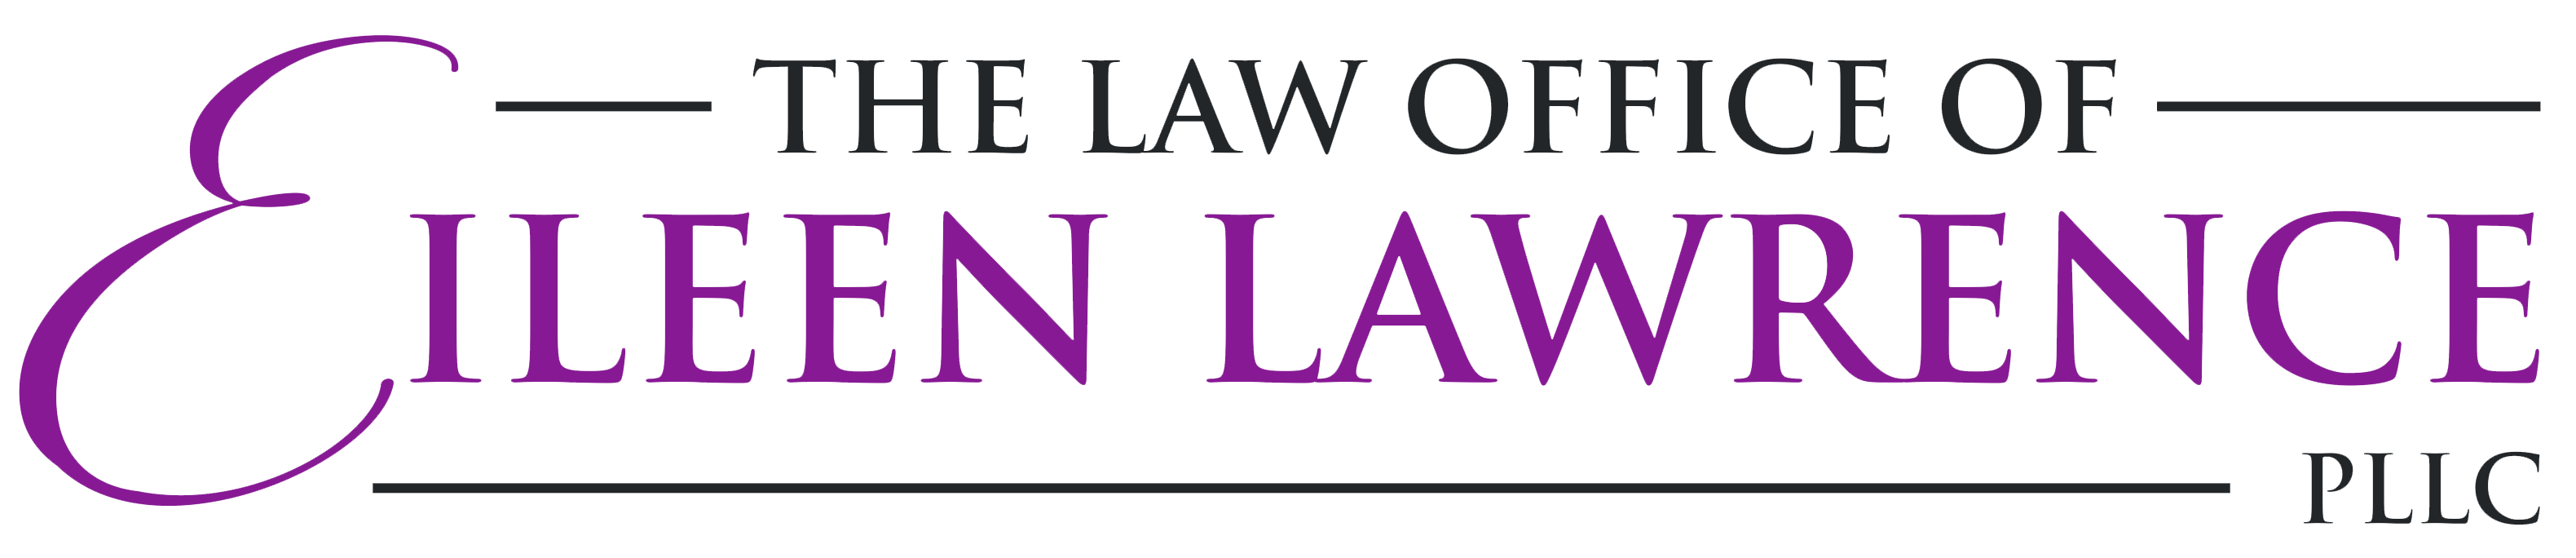 The Law Office of Eileen Lawrence, PLLC Profile Picture